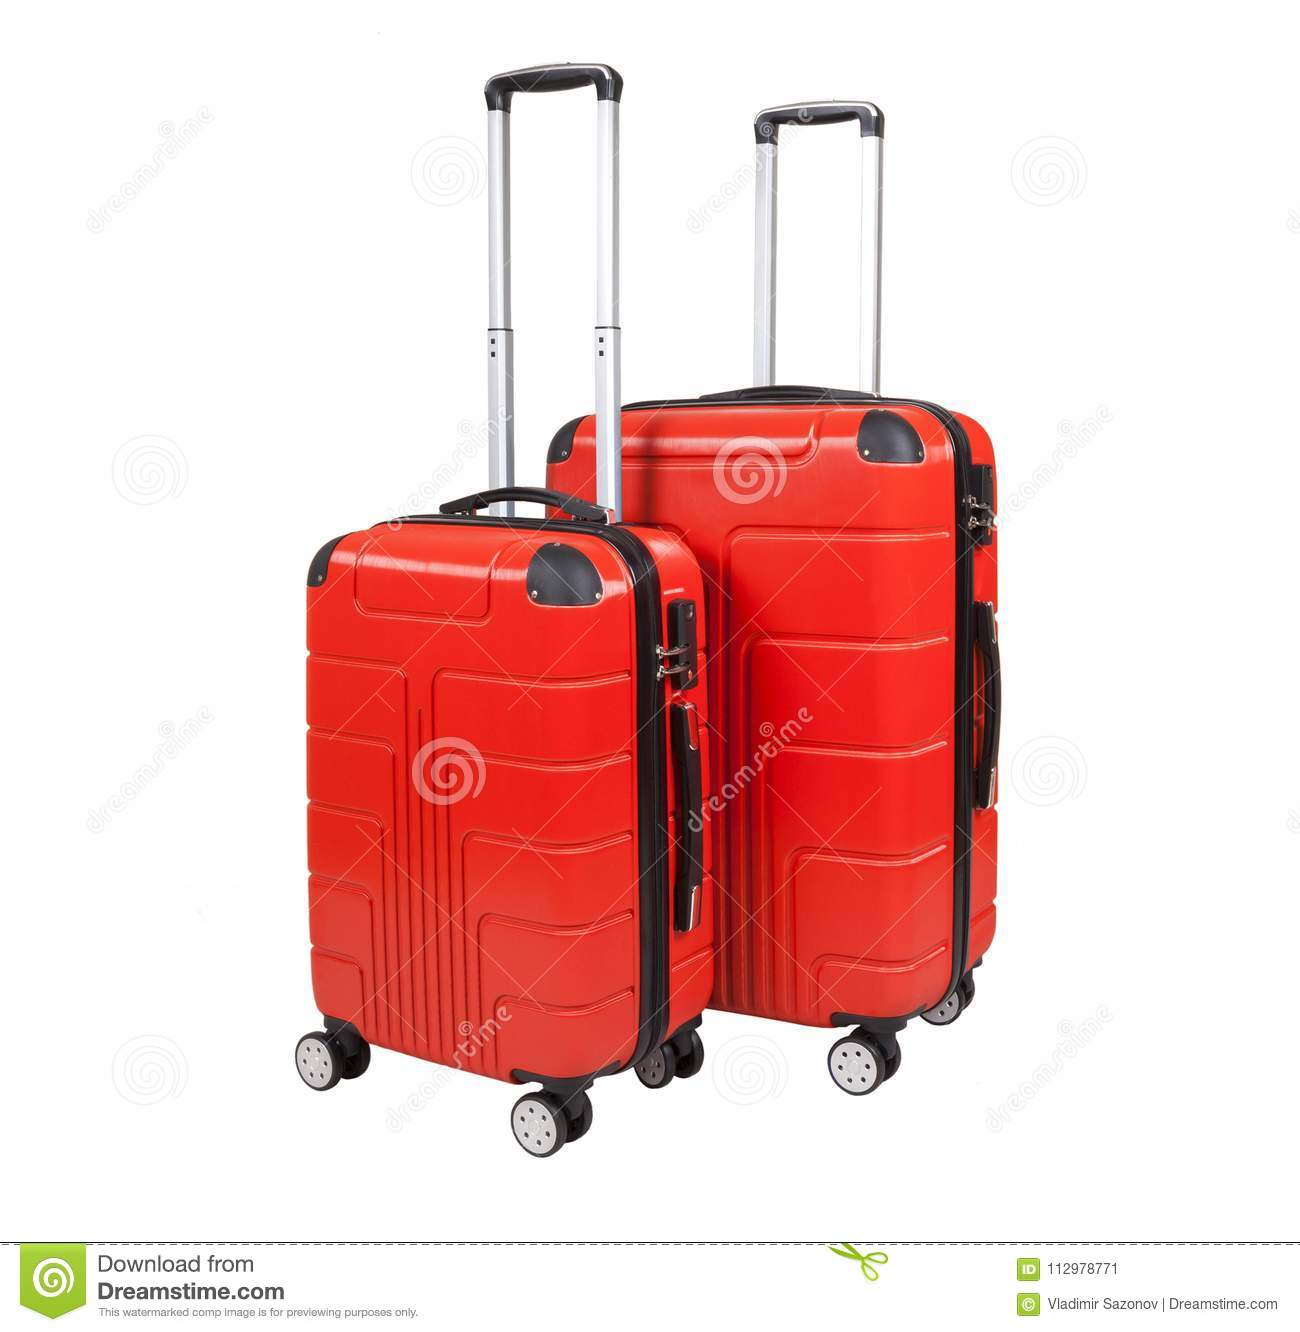 Red suitcase isolated on white background.